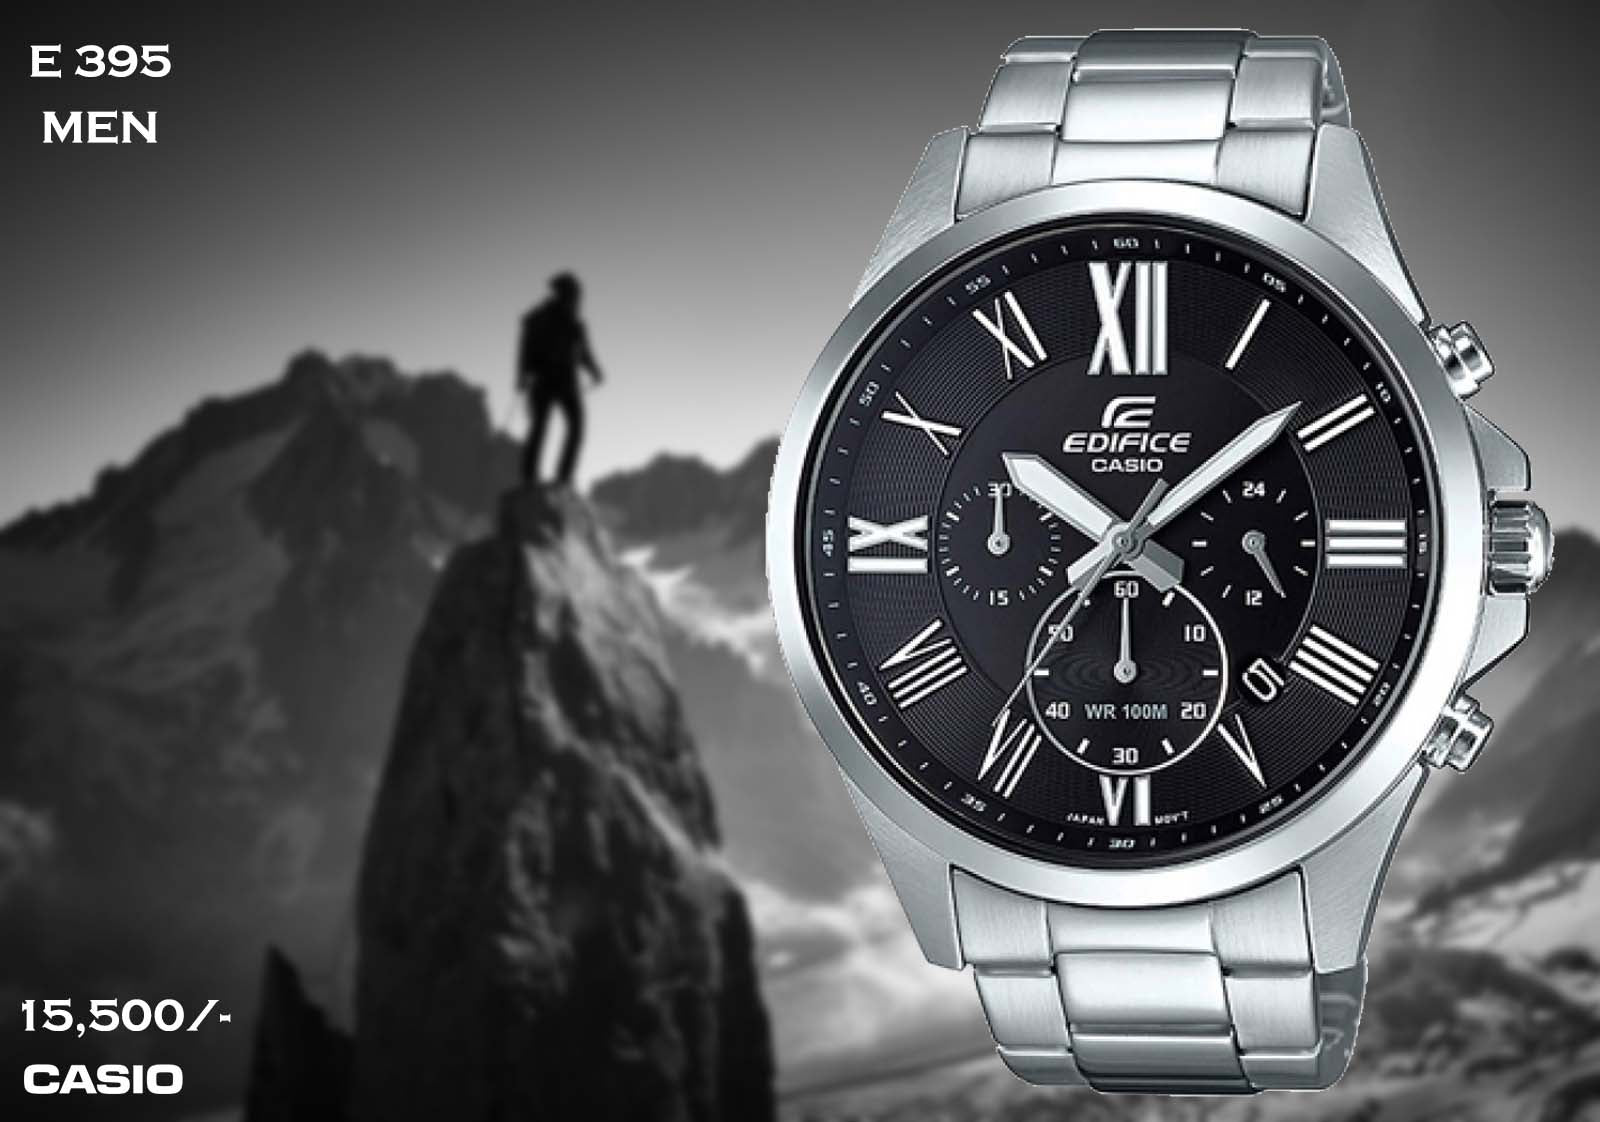 Casio Edifice for Men E 395 (Special Offer)